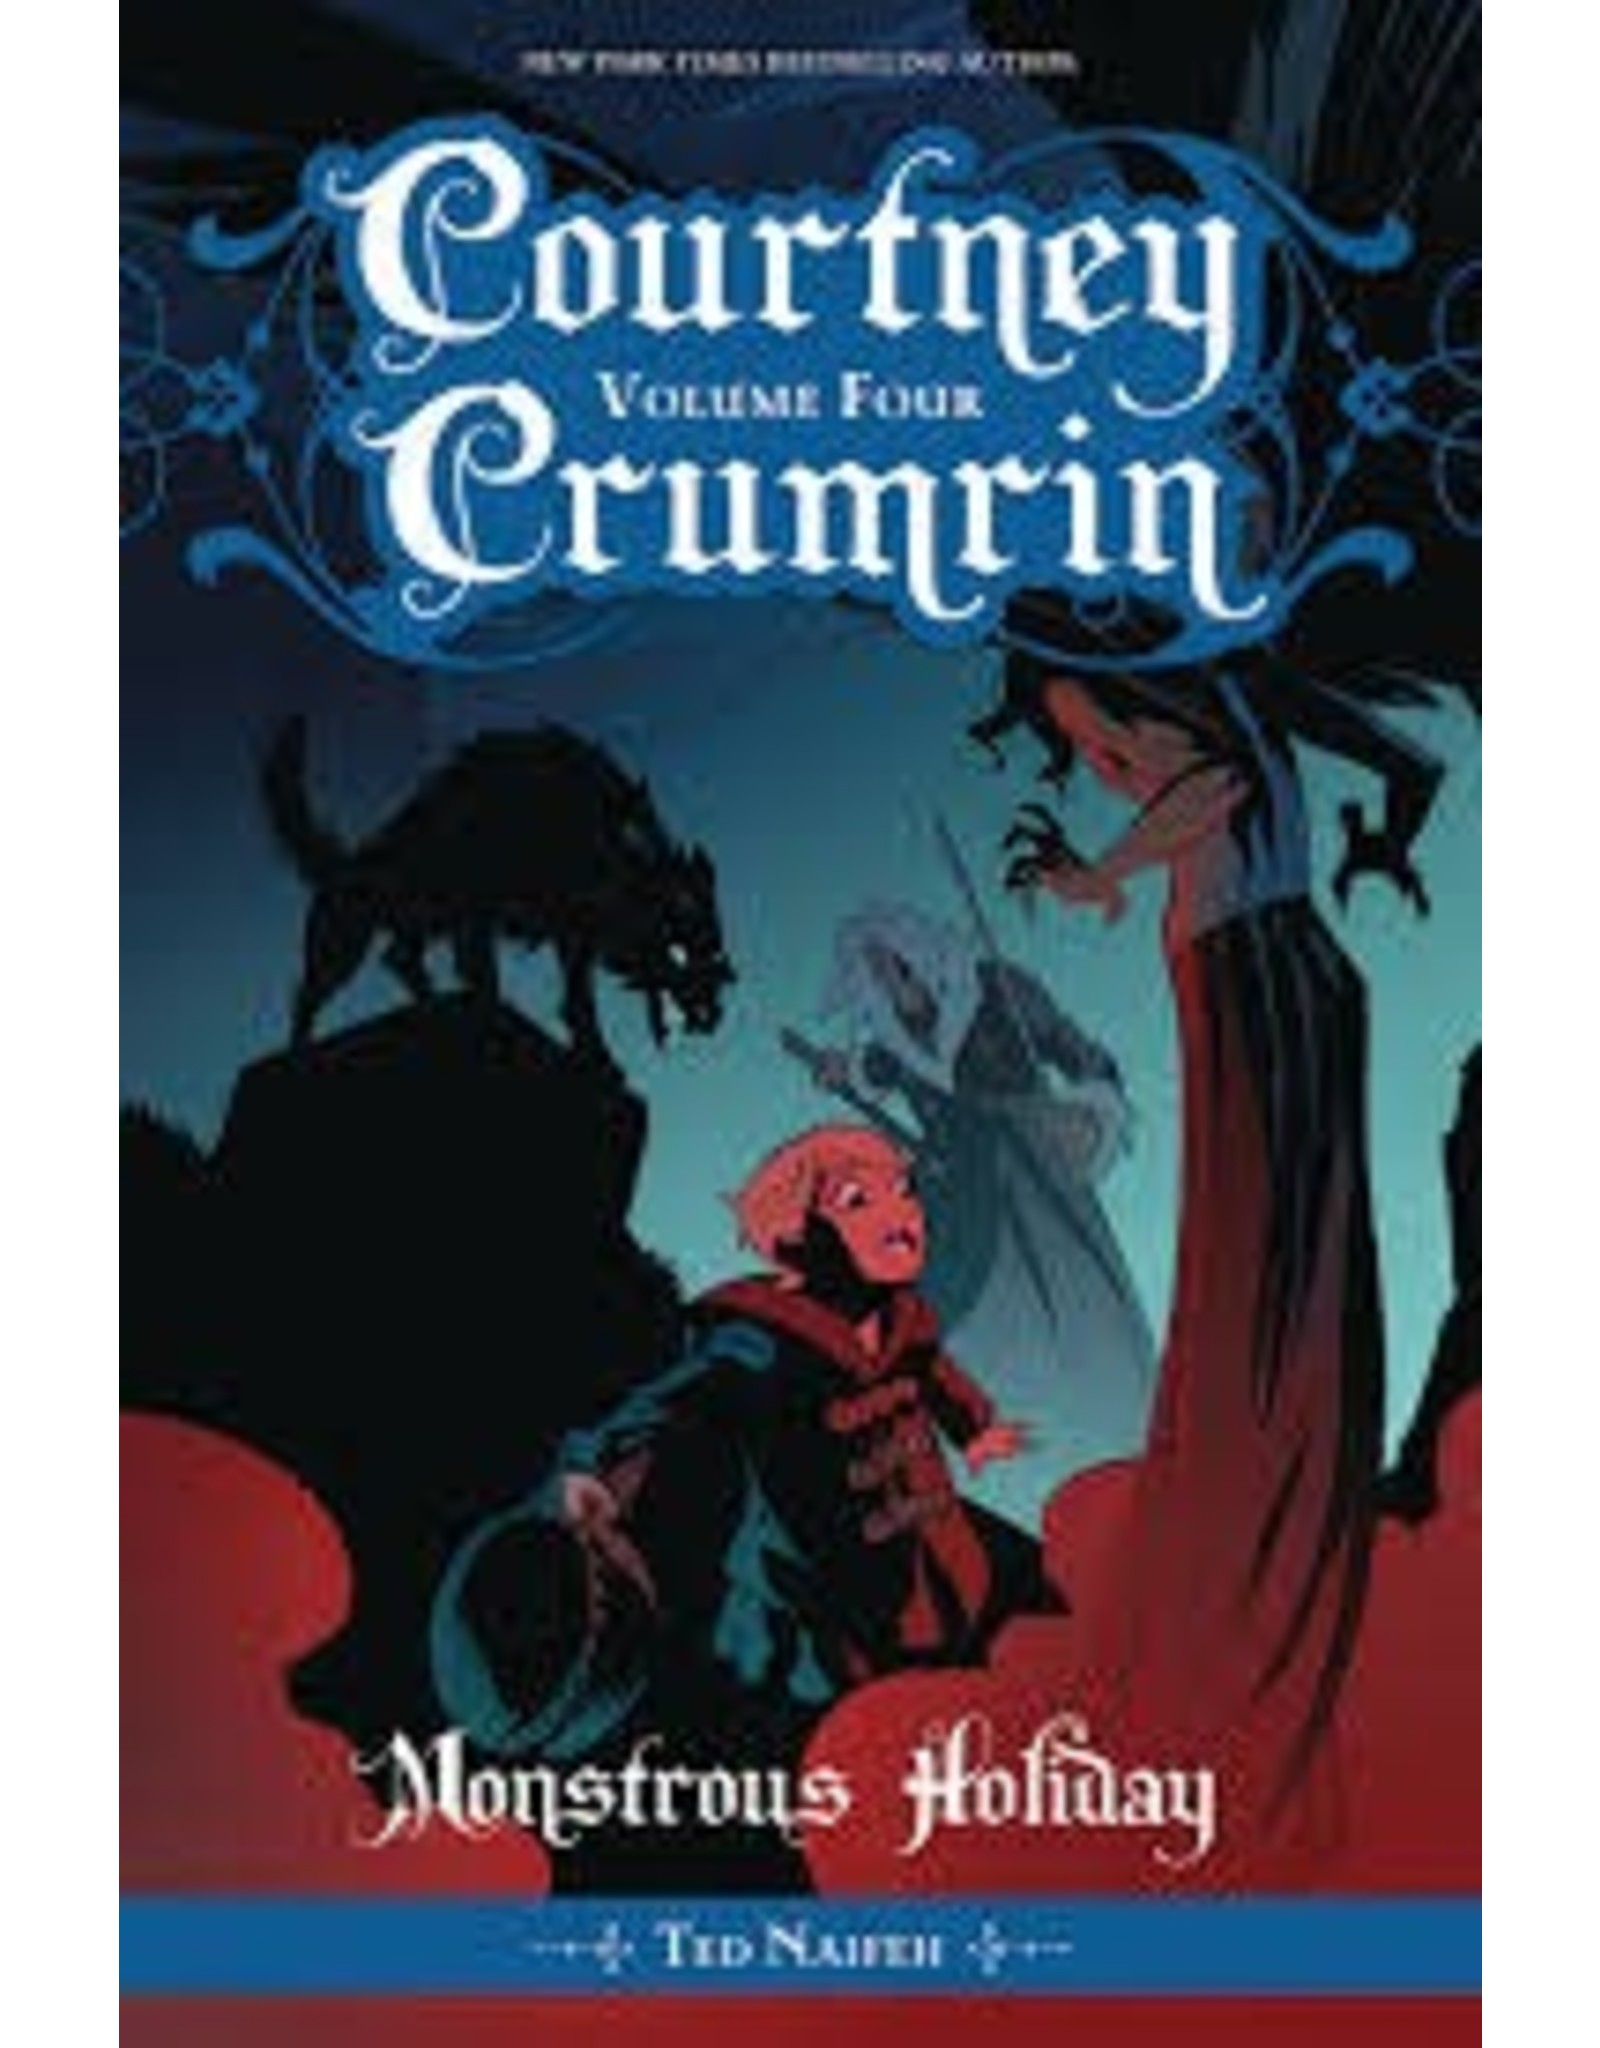 ONI PRESS INC. COURTNEY CRUMRIN TP VOL 04 MONSTROUS HOLIDAY